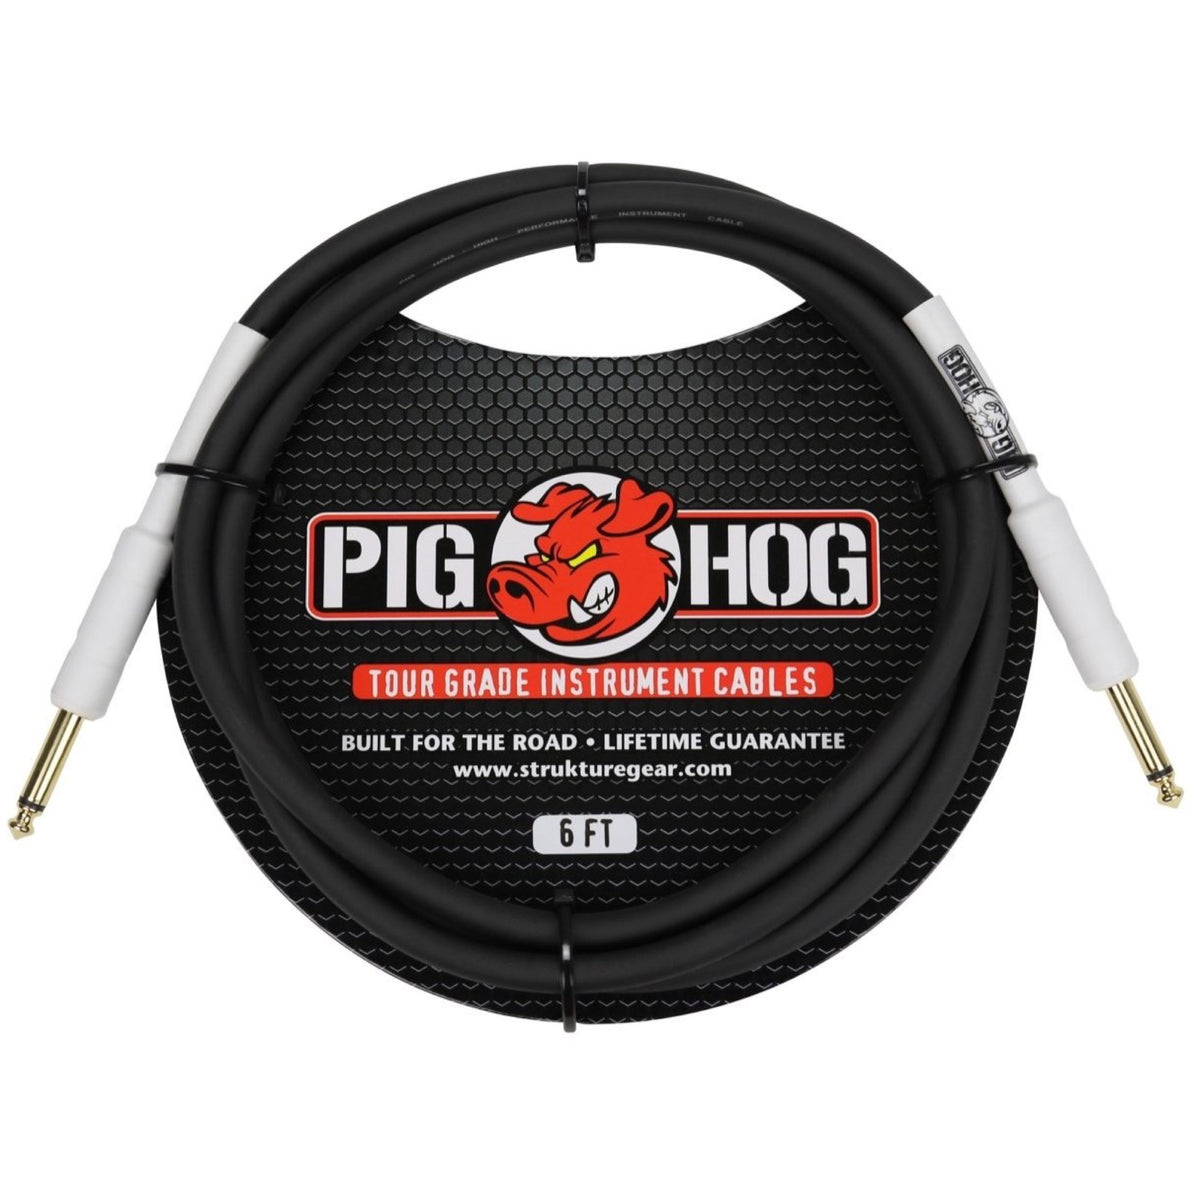 Pig Hog Instrument Cable, 6 Foot